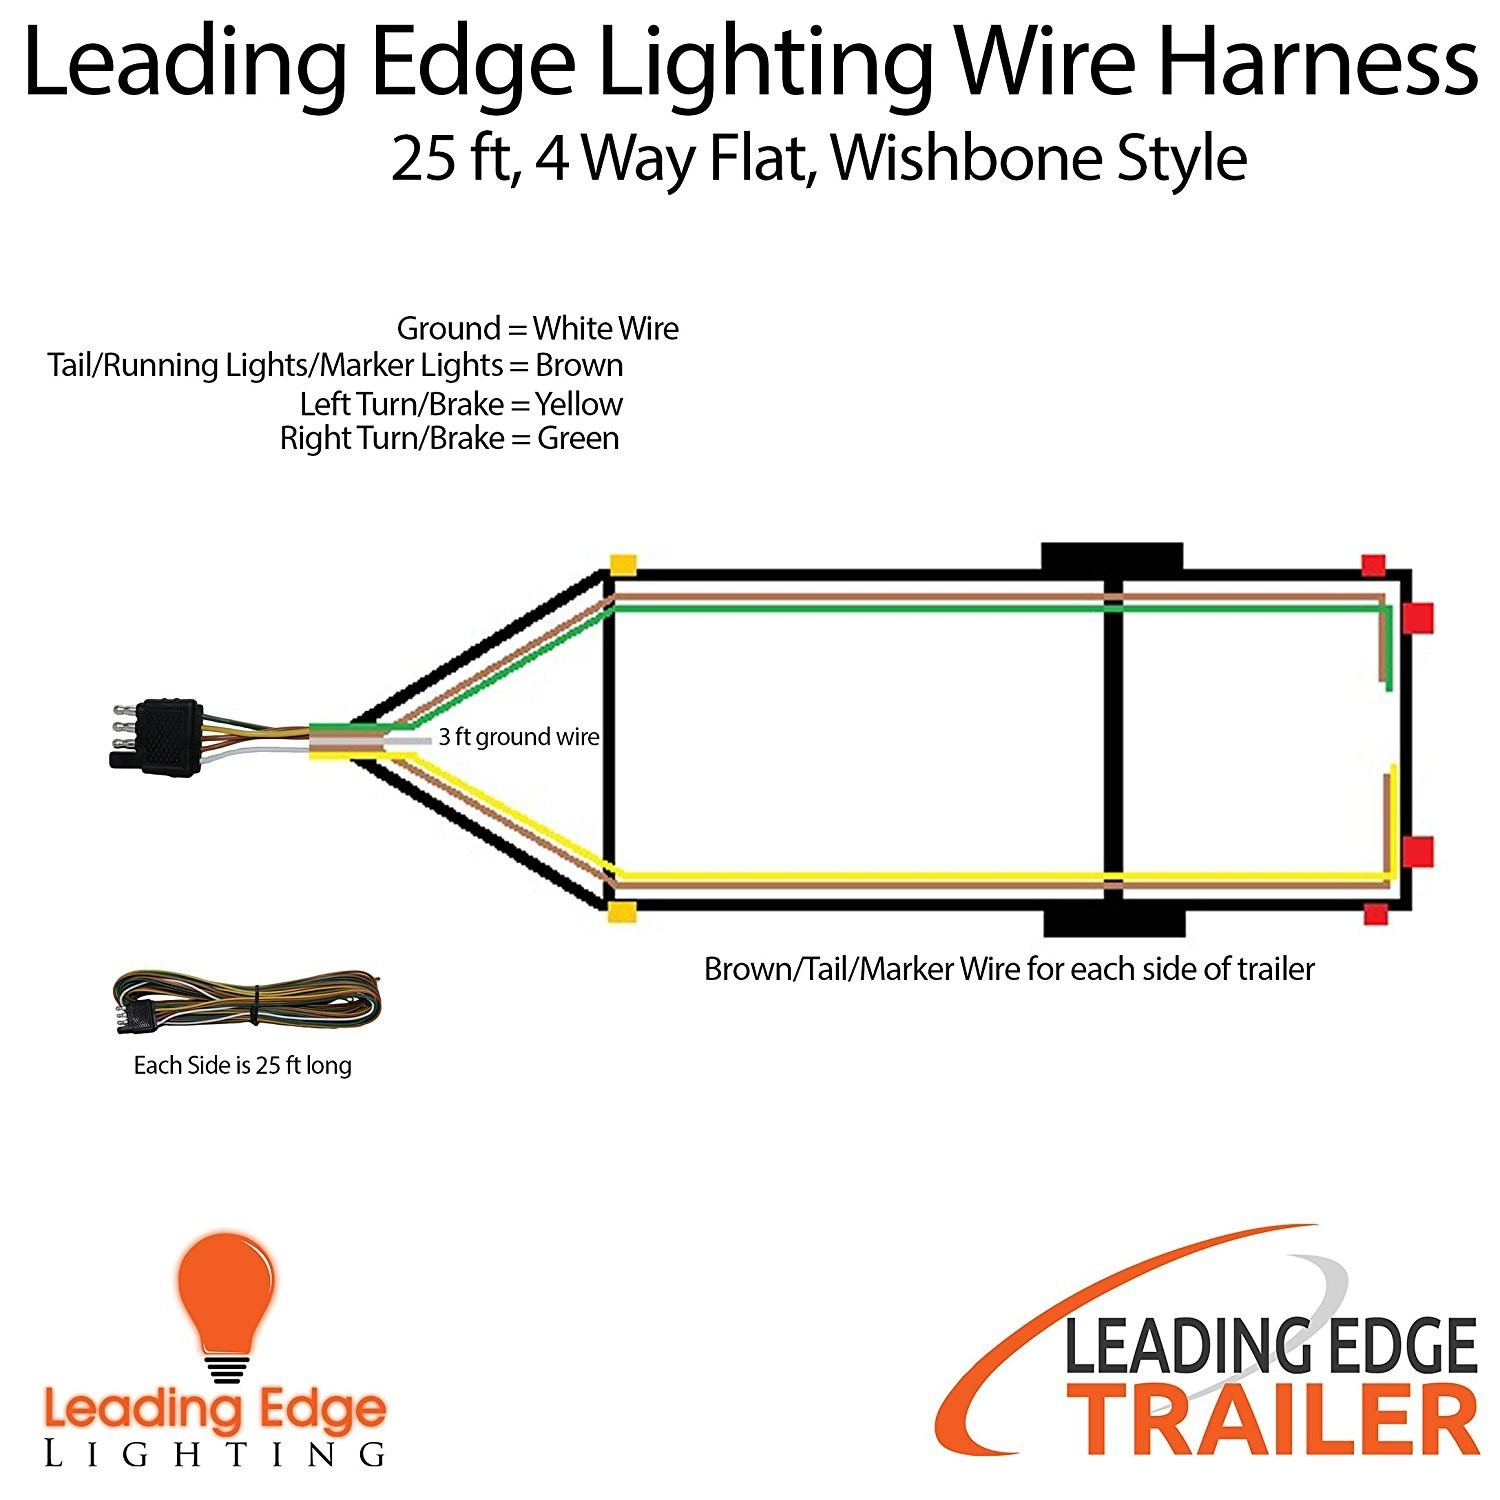 Tremendous Flat Bed Trailer 4 Wire Wiring Diagram Basic Electronics Wiring Wiring Cloud Loplapiotaidewilluminateatxorg